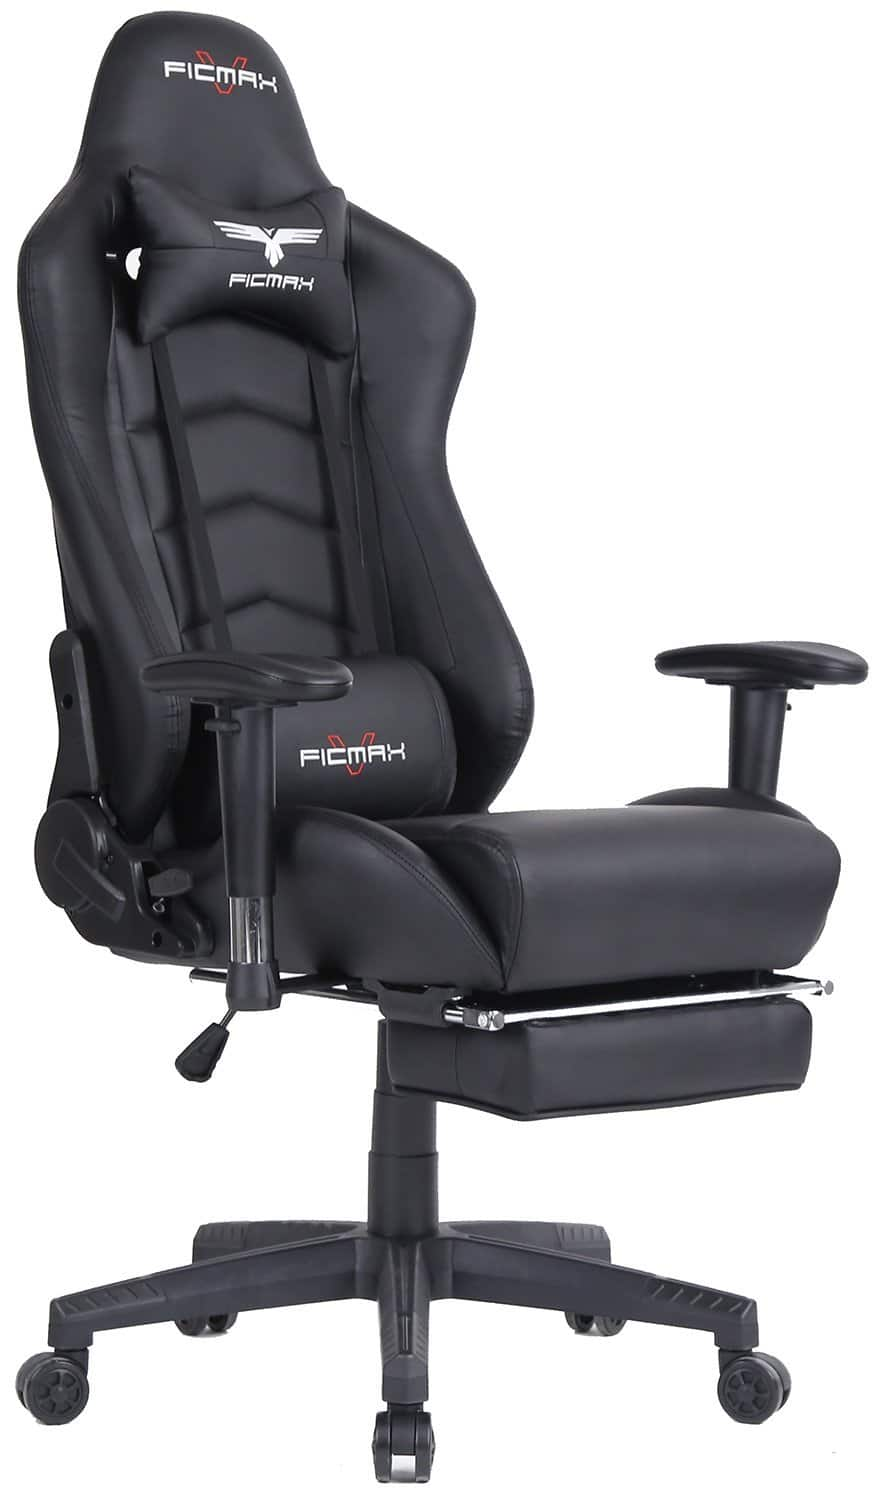 Admirable Best Cheap Gaming Chairs 2019 Under 100 200 Budgetreport Pdpeps Interior Chair Design Pdpepsorg